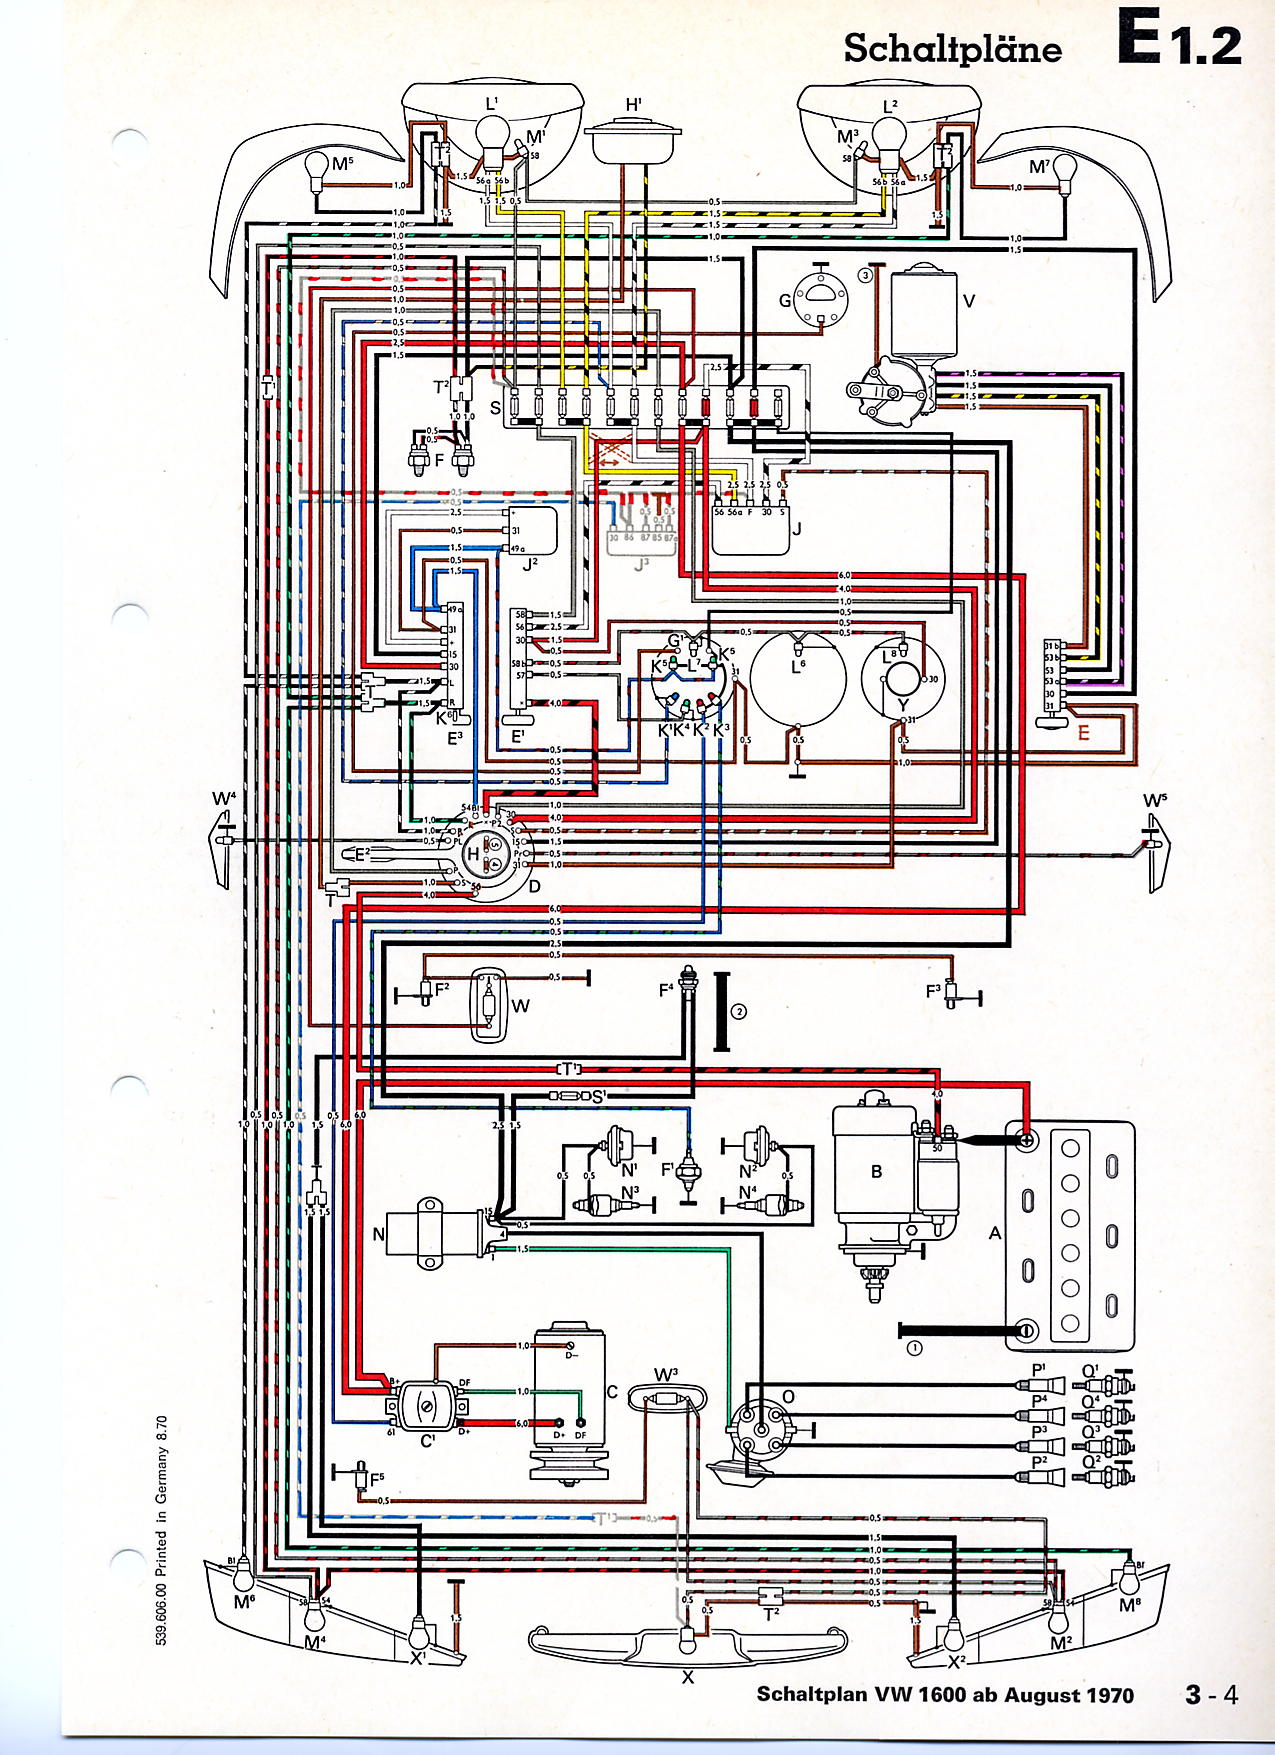 vw lupo wiring diagram vw image wiring diagram lupo wiring diagram wiring diagrams and schematics on vw lupo wiring diagram